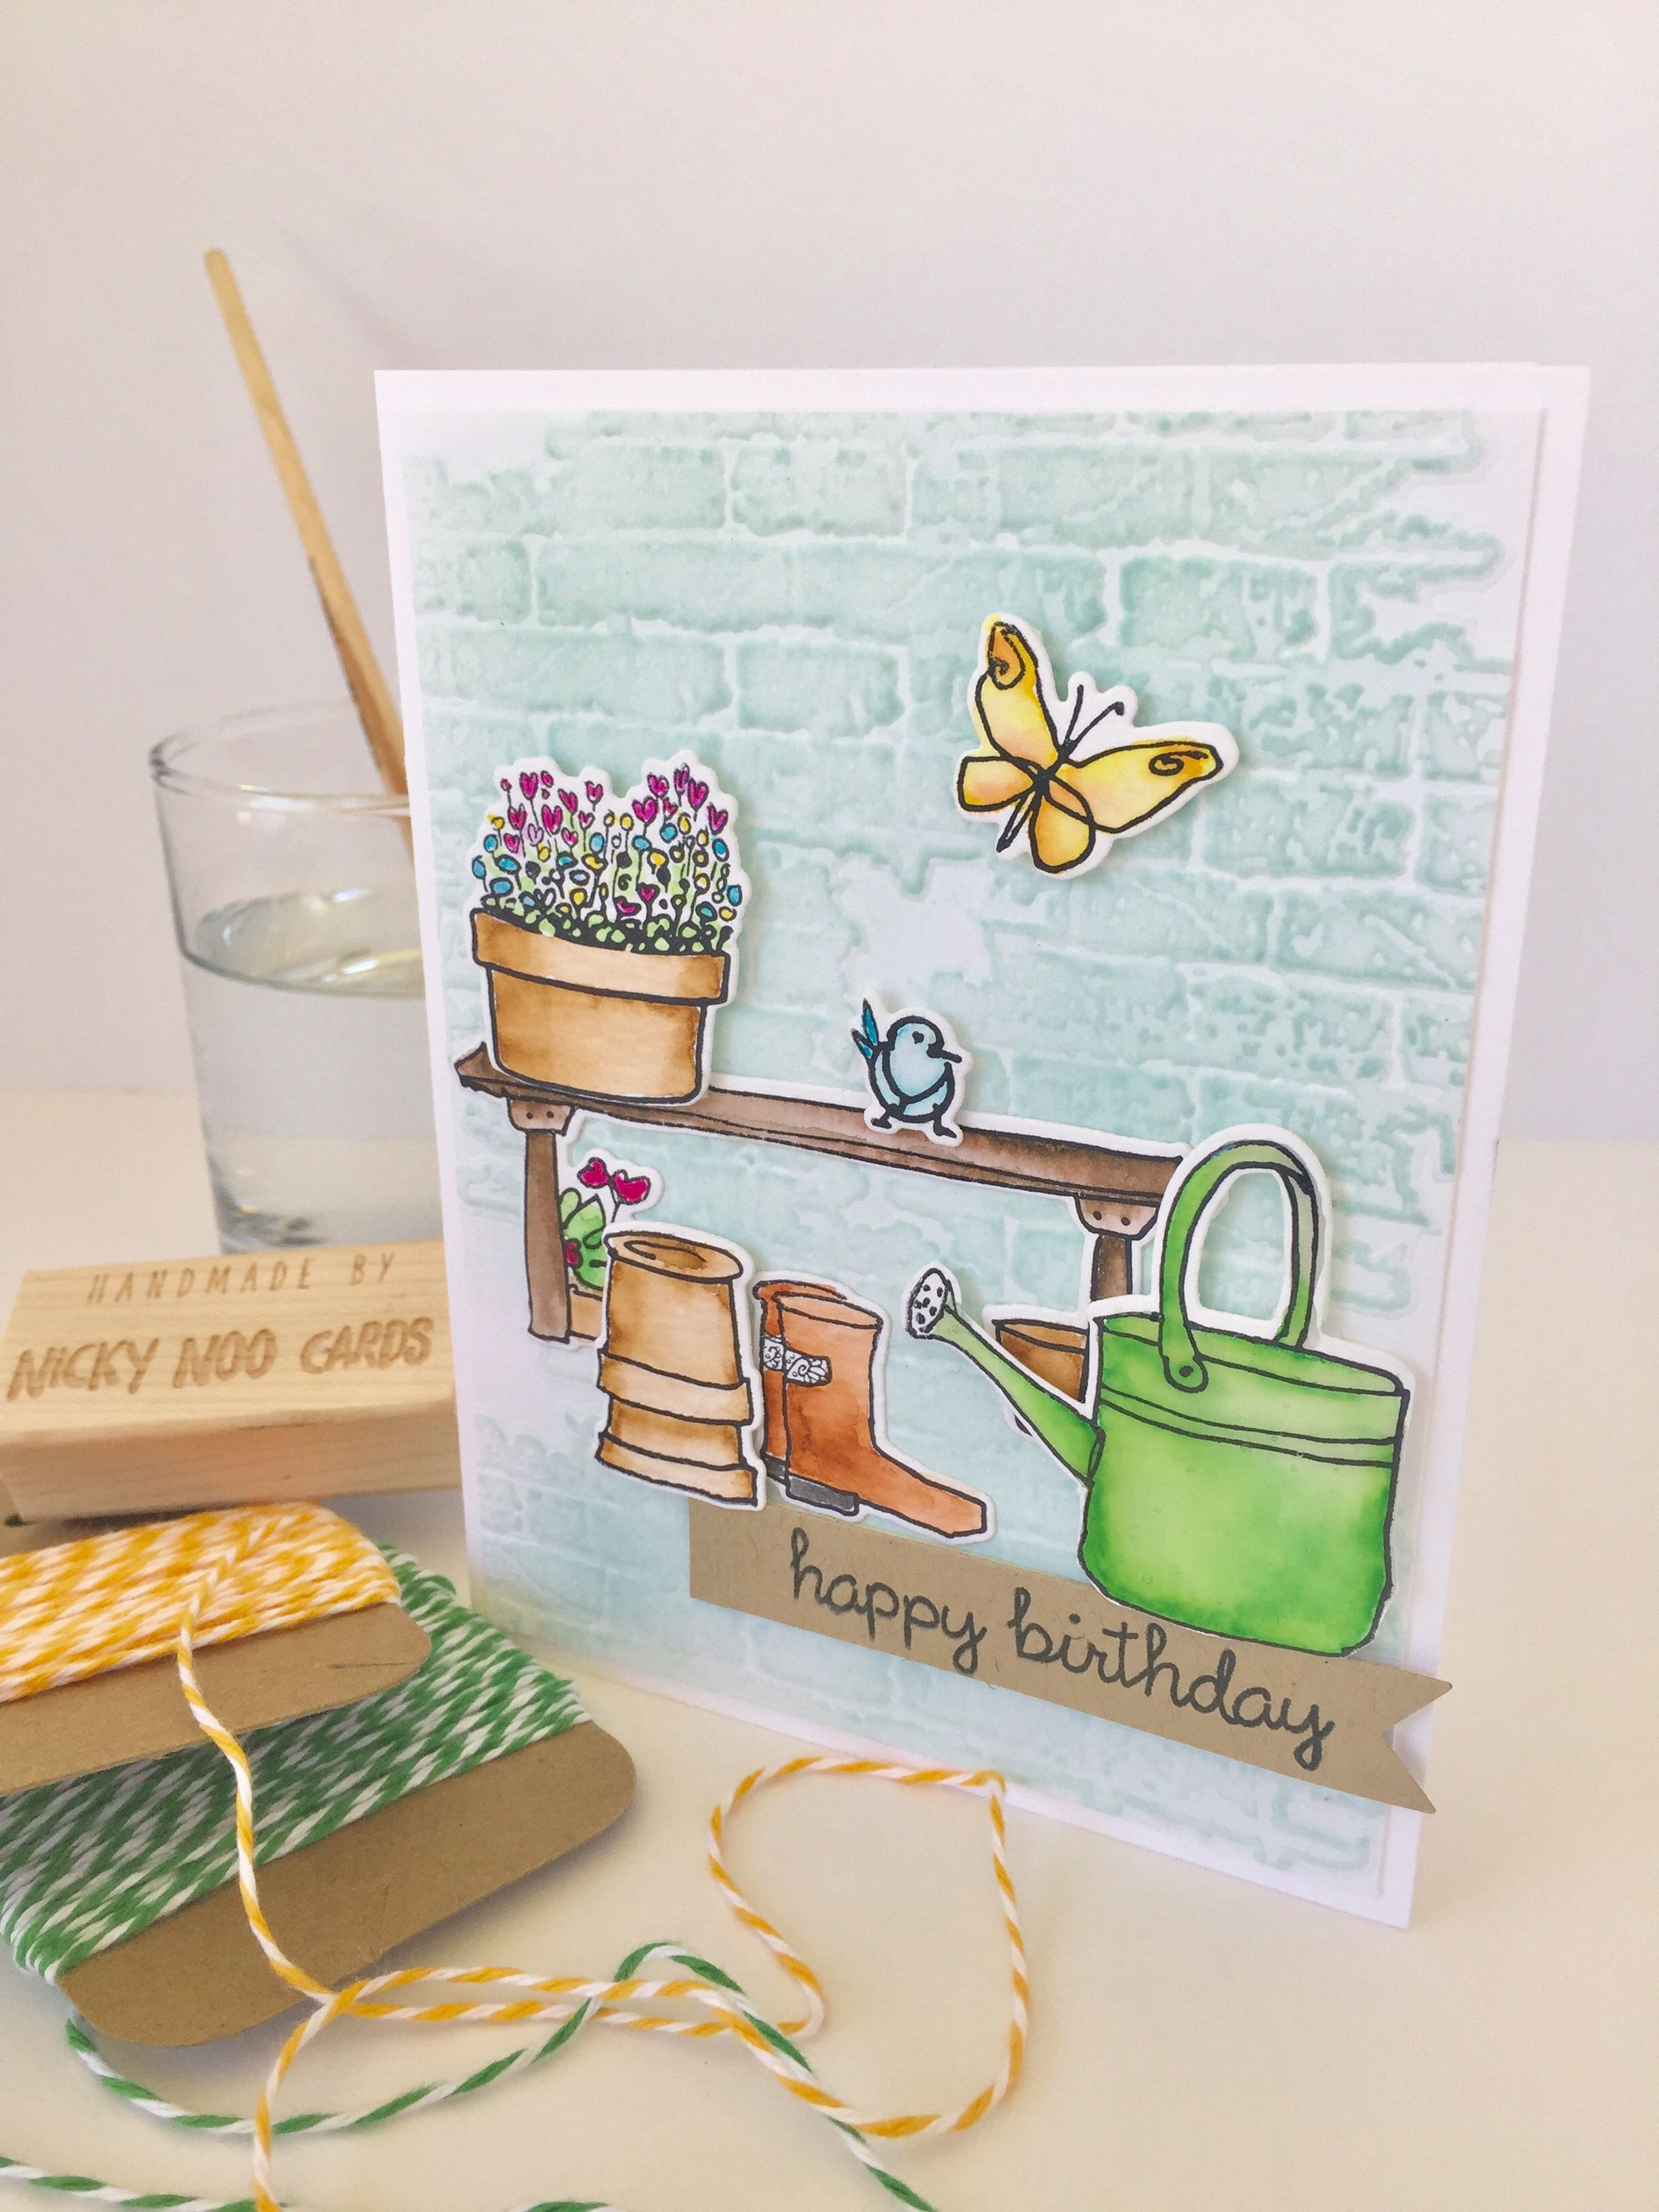 How to make scrapbook in facebook - Cards